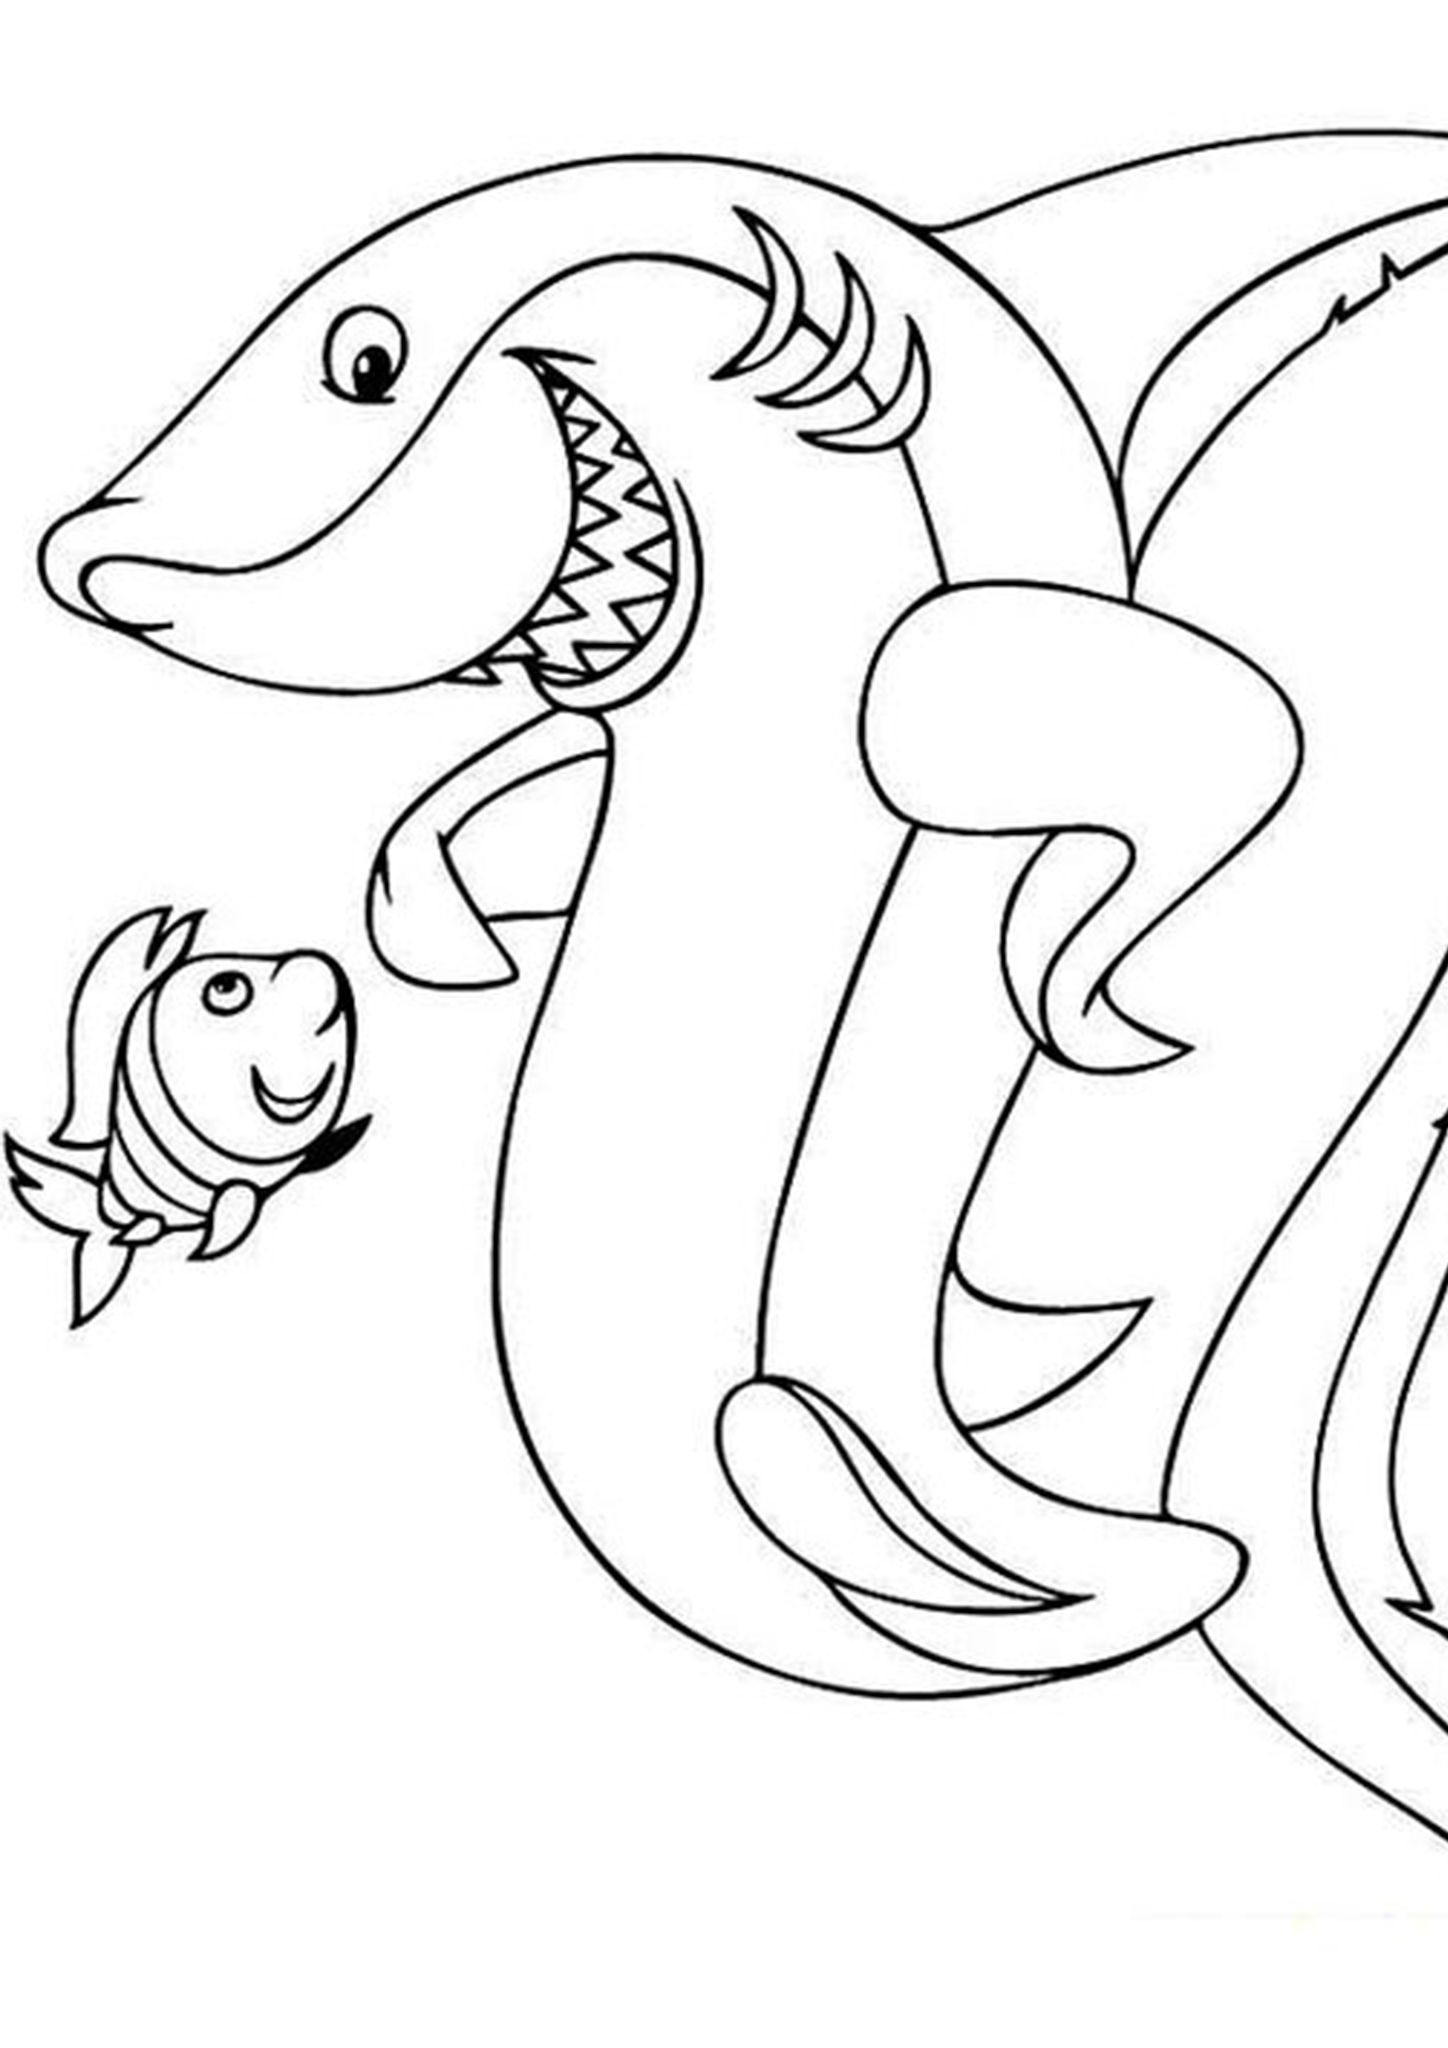 Free Easy To Print Shark Coloring Pages Shark Coloring Pages Dolphin Coloring Pages Coloring Pages